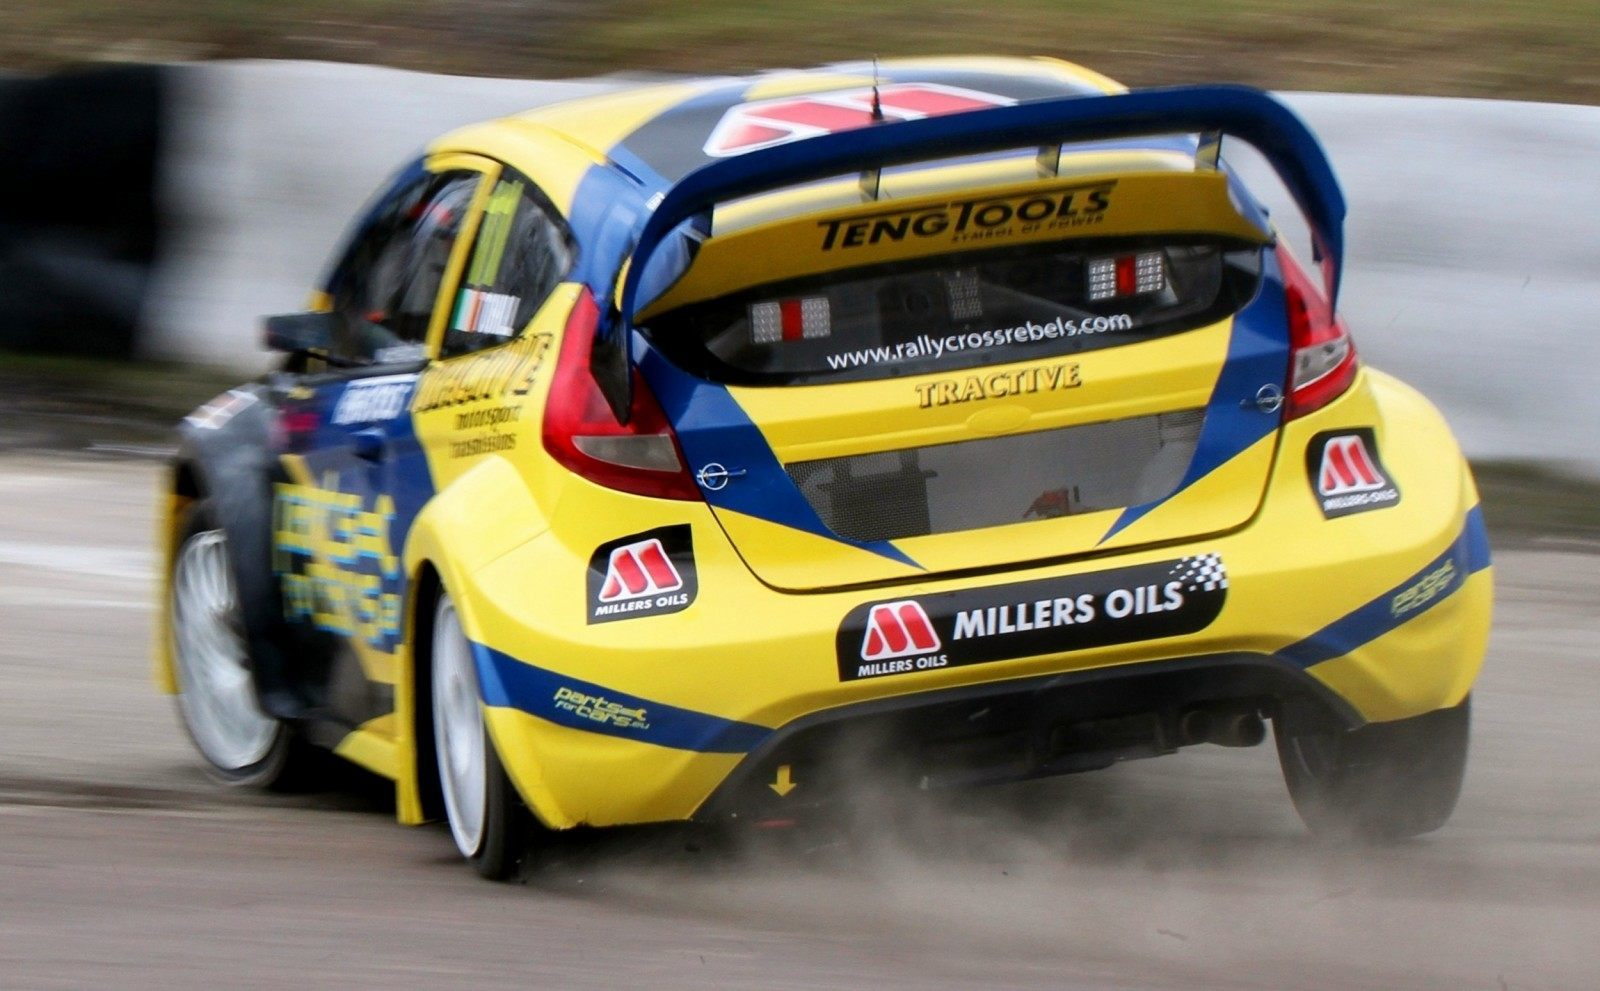 All-New FIA RallyCross Series Looks FUN! Dart, Sonic, Beetle, Fiesta, Fabia, Pug 208GTI and More On-Board 11